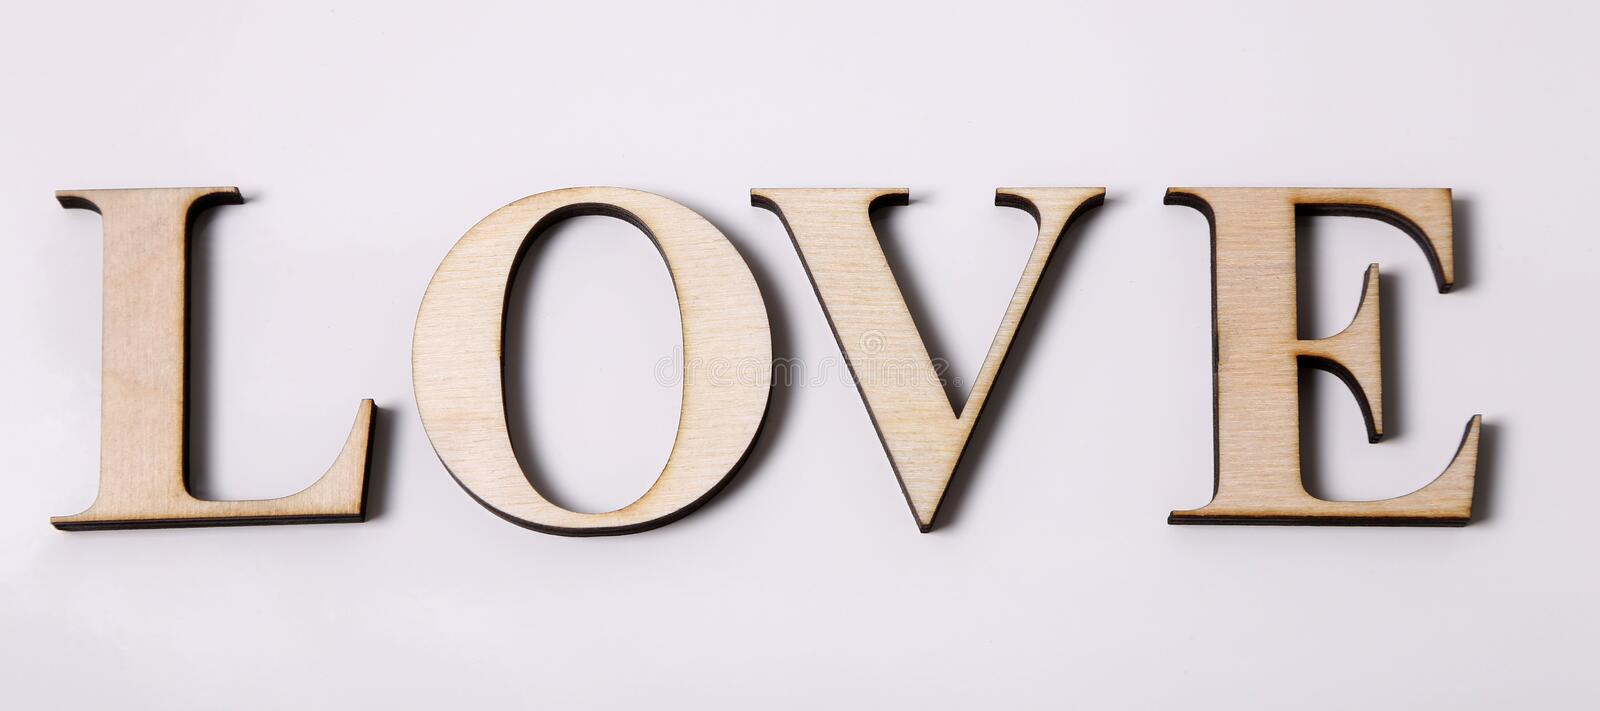 Word love made of wooden letters isolated on white background stock photography